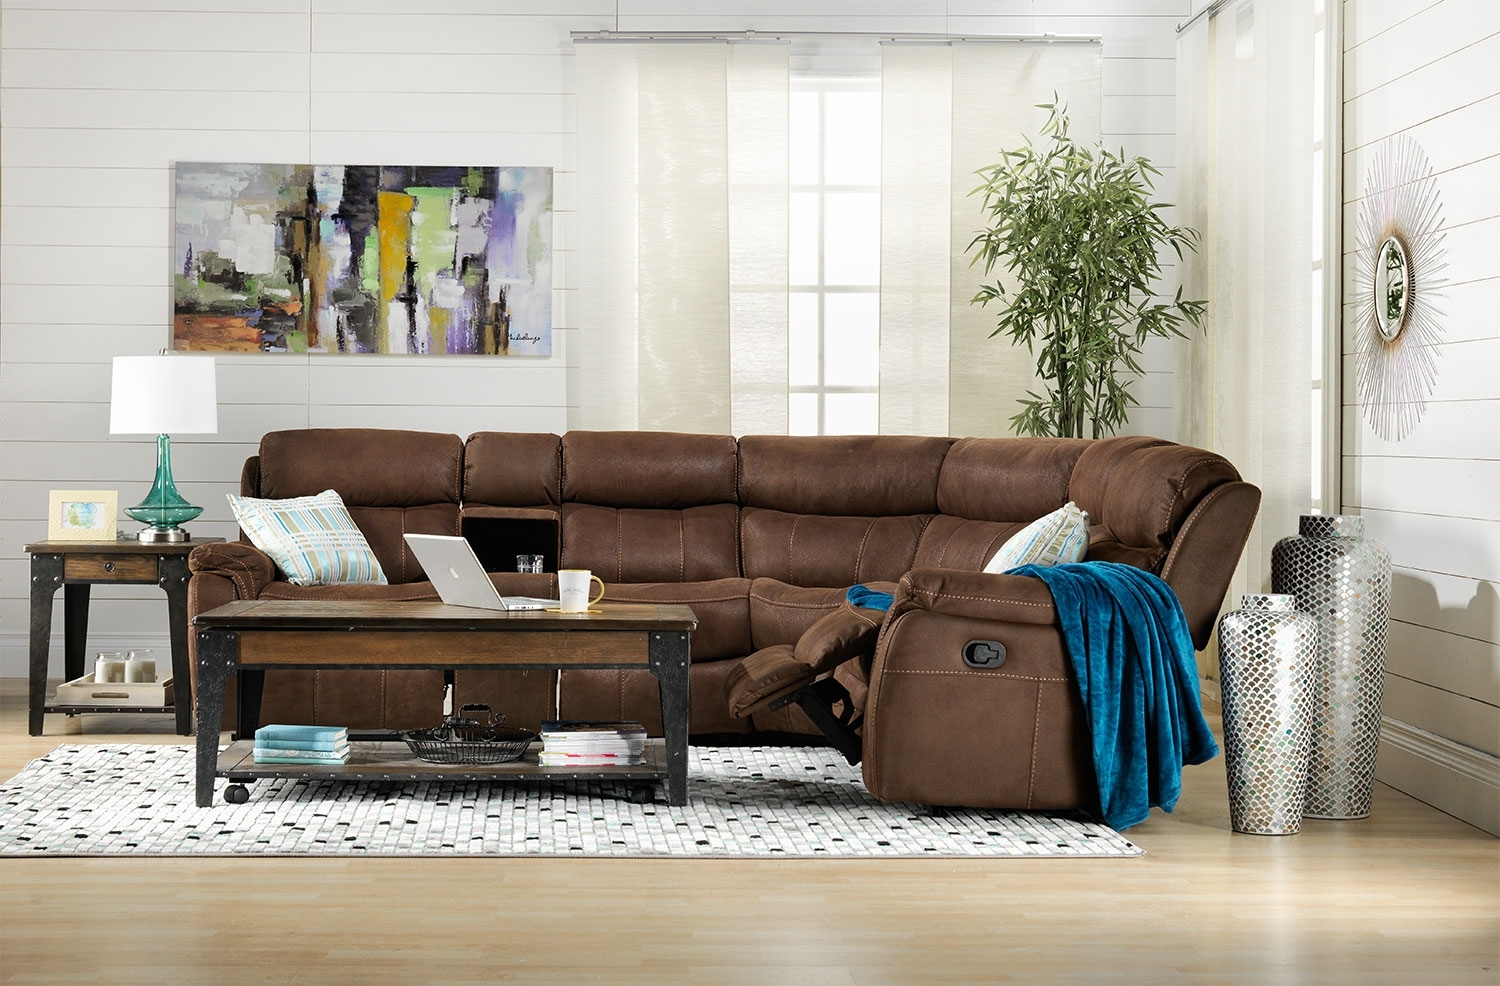 Vaquero 6-Piece Reclining Sectional - Saddle Brown | Leon's throughout Sectional Sofas at Brampton (Image 15 of 15)